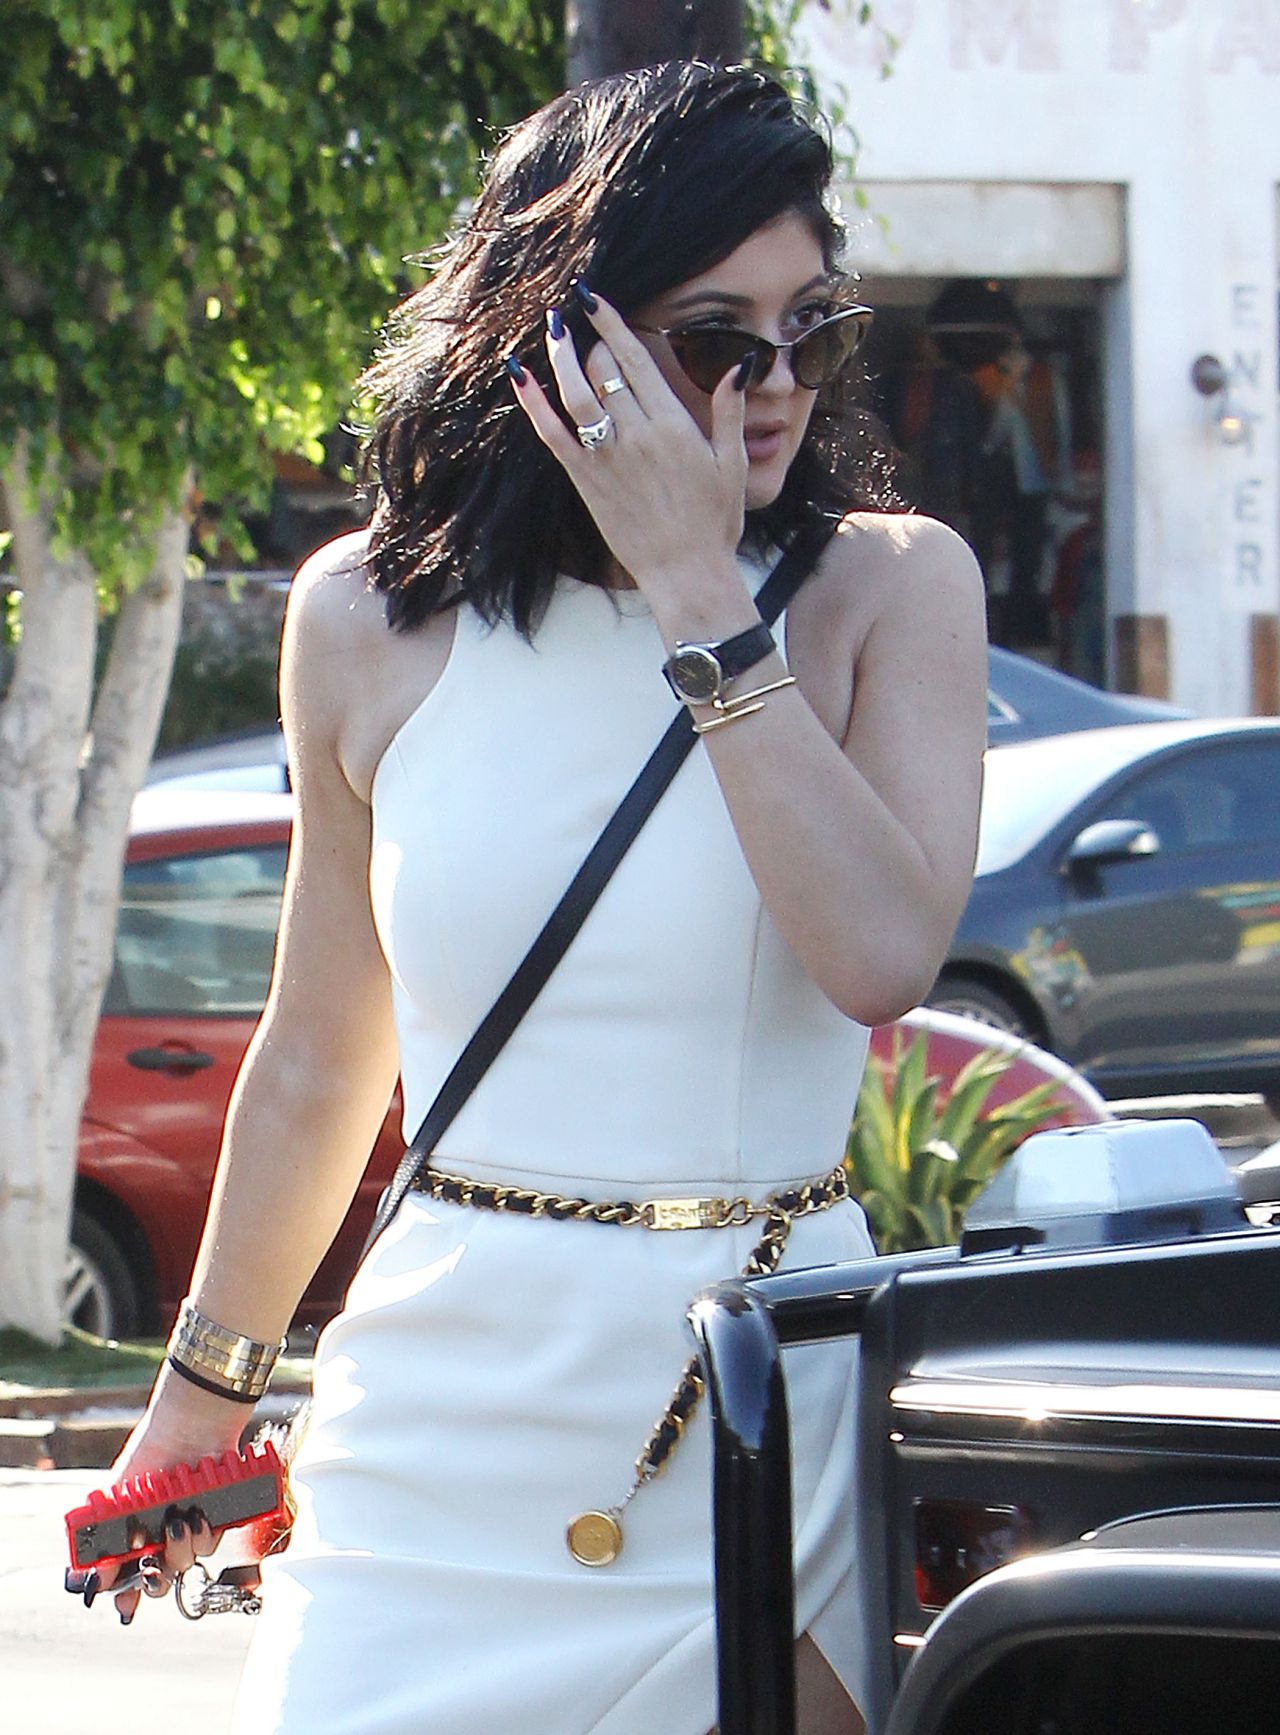 ... Jenner Style – Leaving Fred Segal in West Hollywood – August 2014 Sara Paxton 2014 Boyfriend